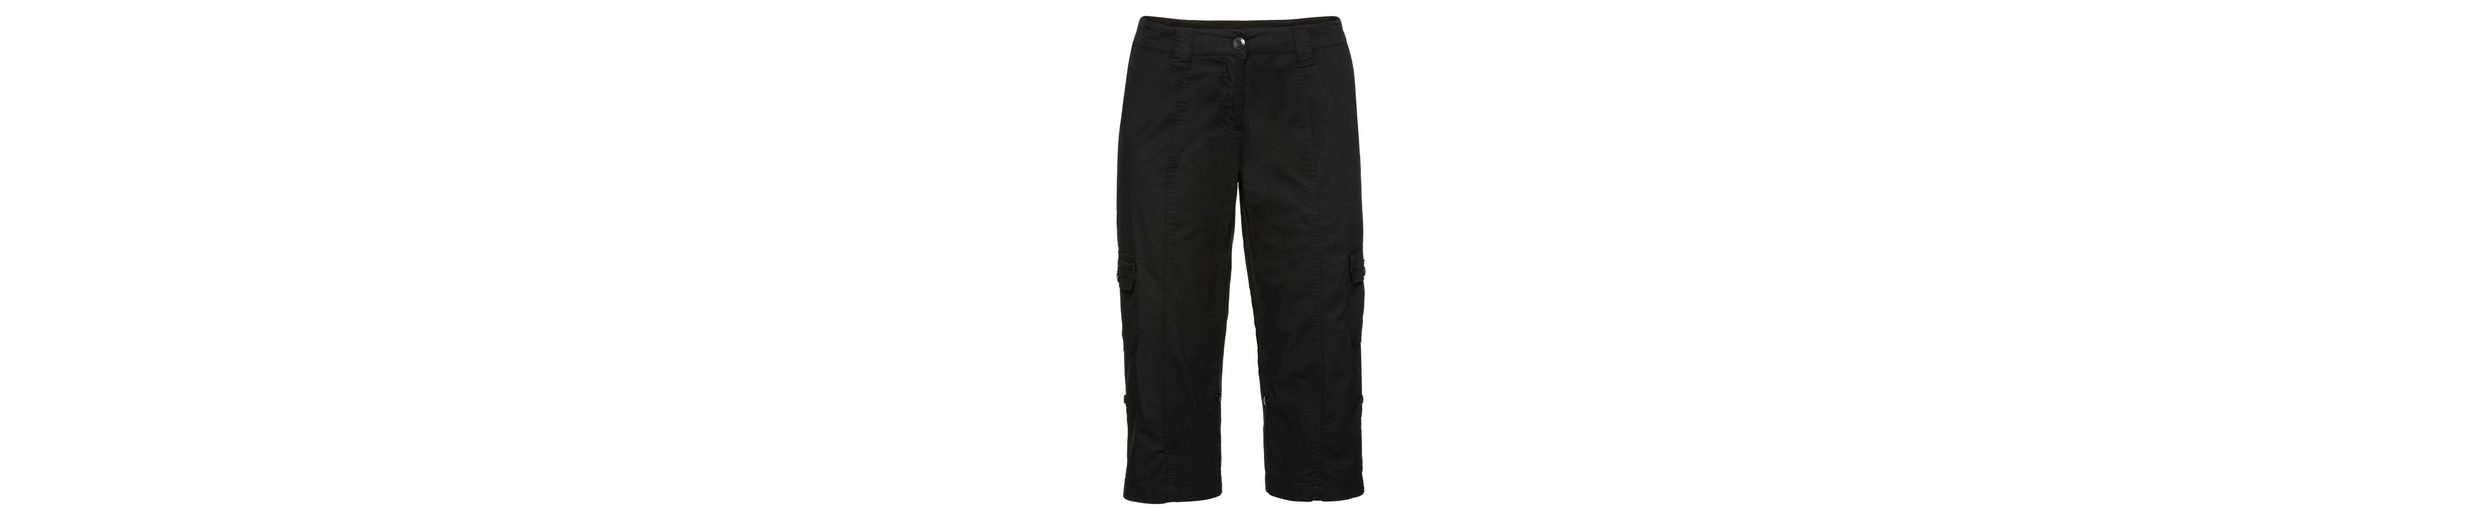 sheego Casual 3/4-Hose, mit Krempelfunktion